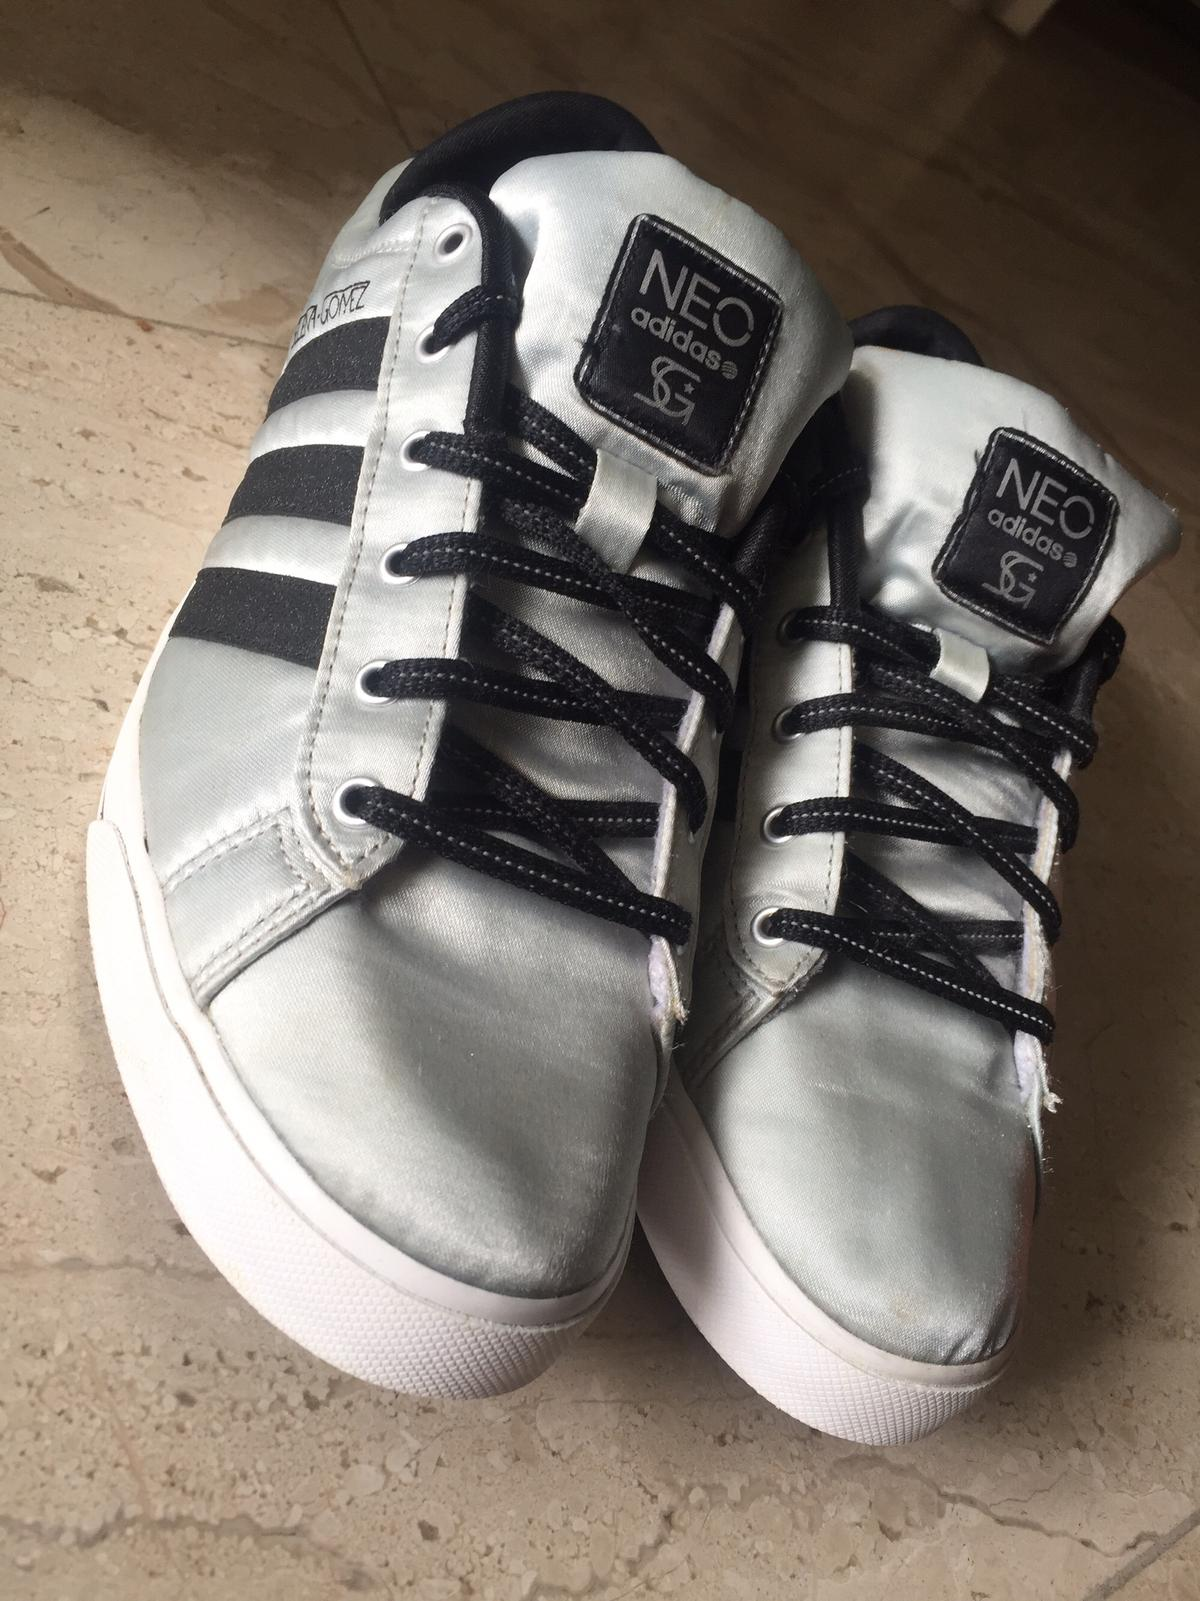 Gomez Adidas Collection38 In Neoselena 36277 Schenklengsfeld vmN8w0nyO